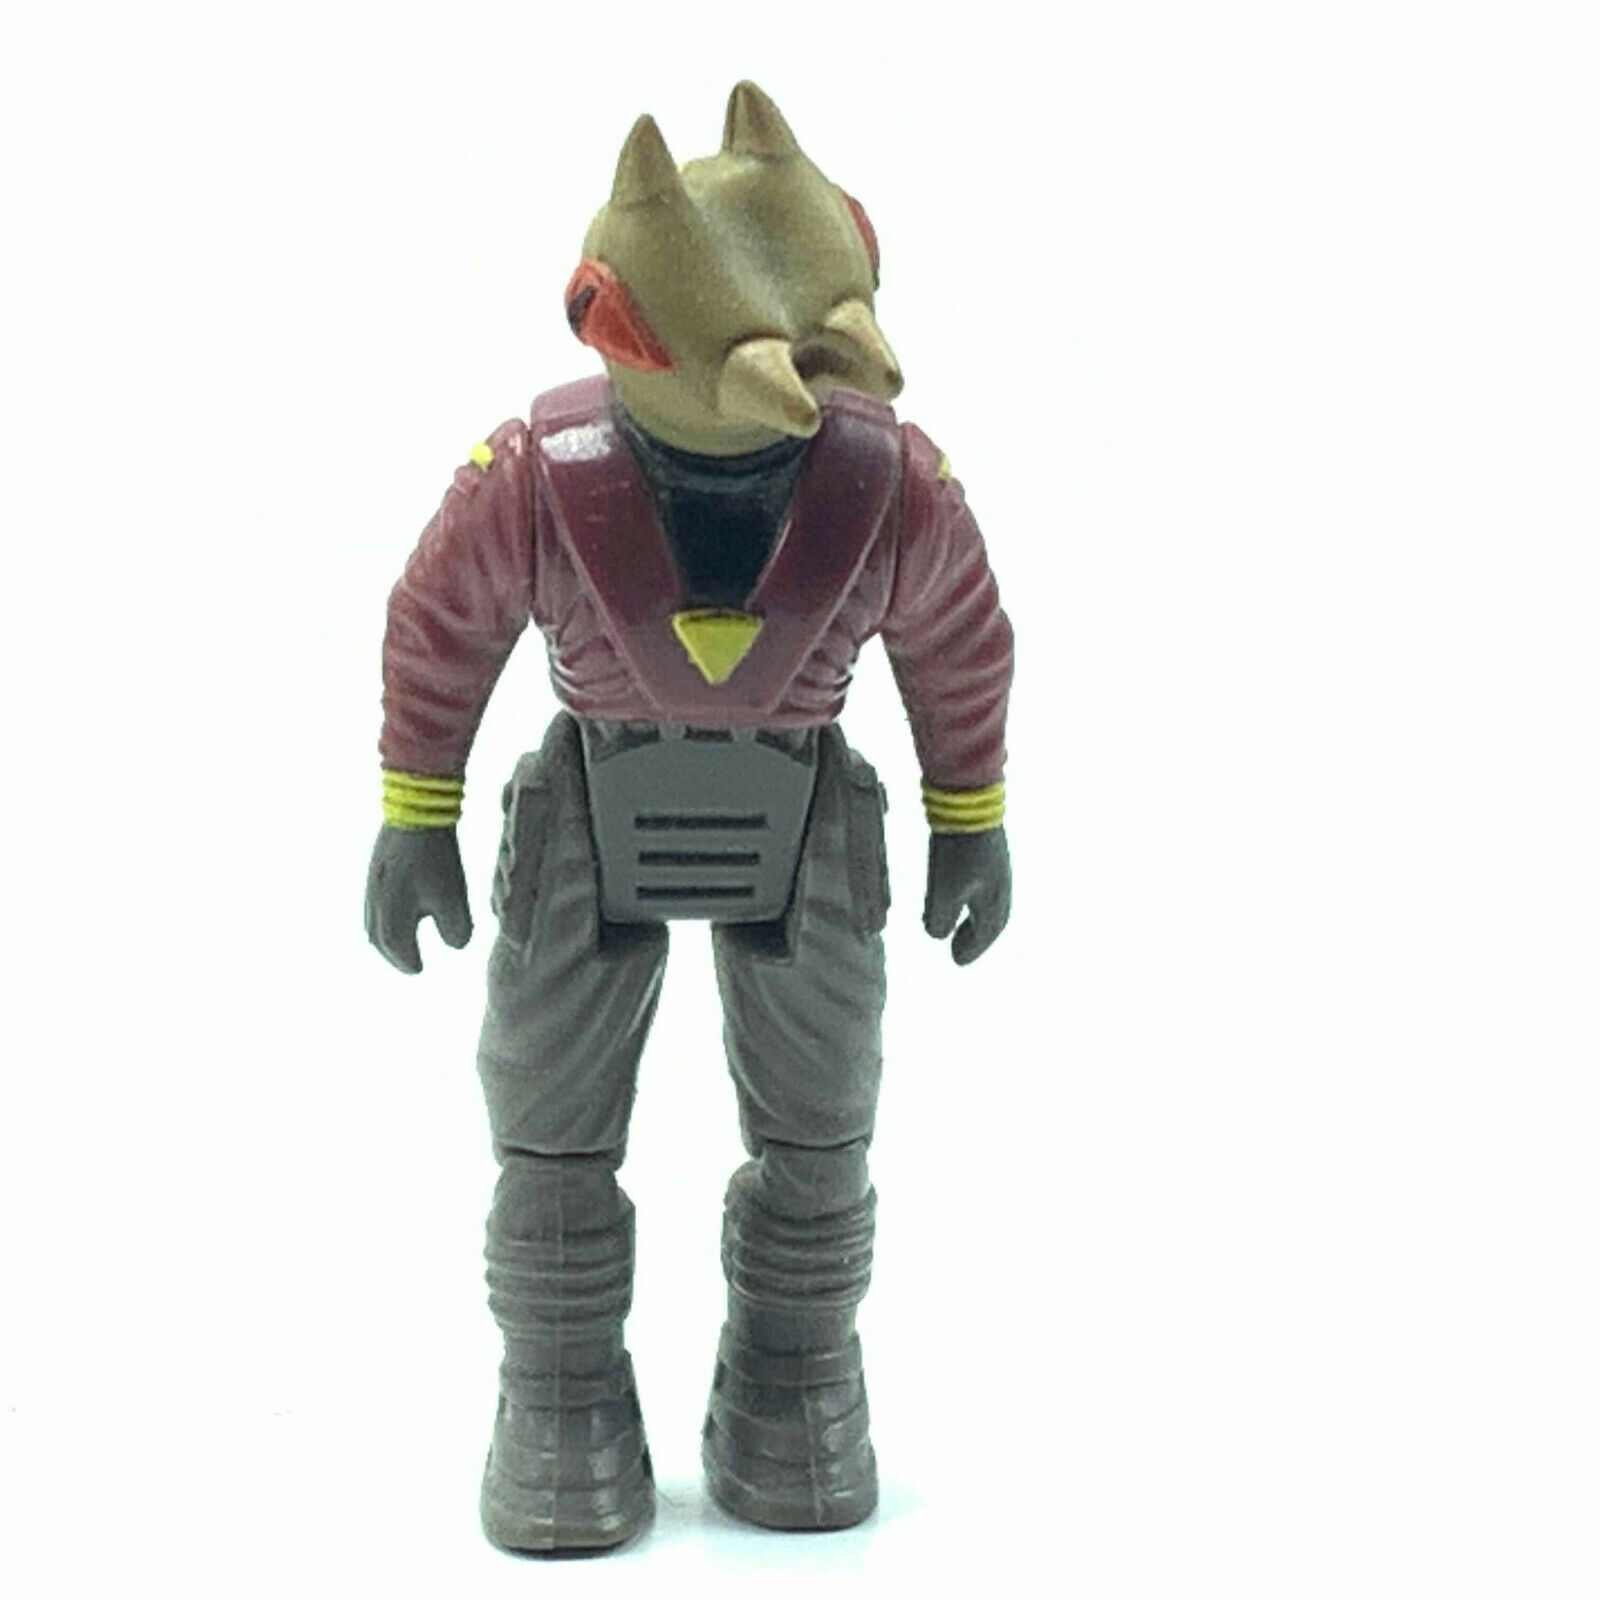 DINO RIDERS Parts FINN action figure Tyco